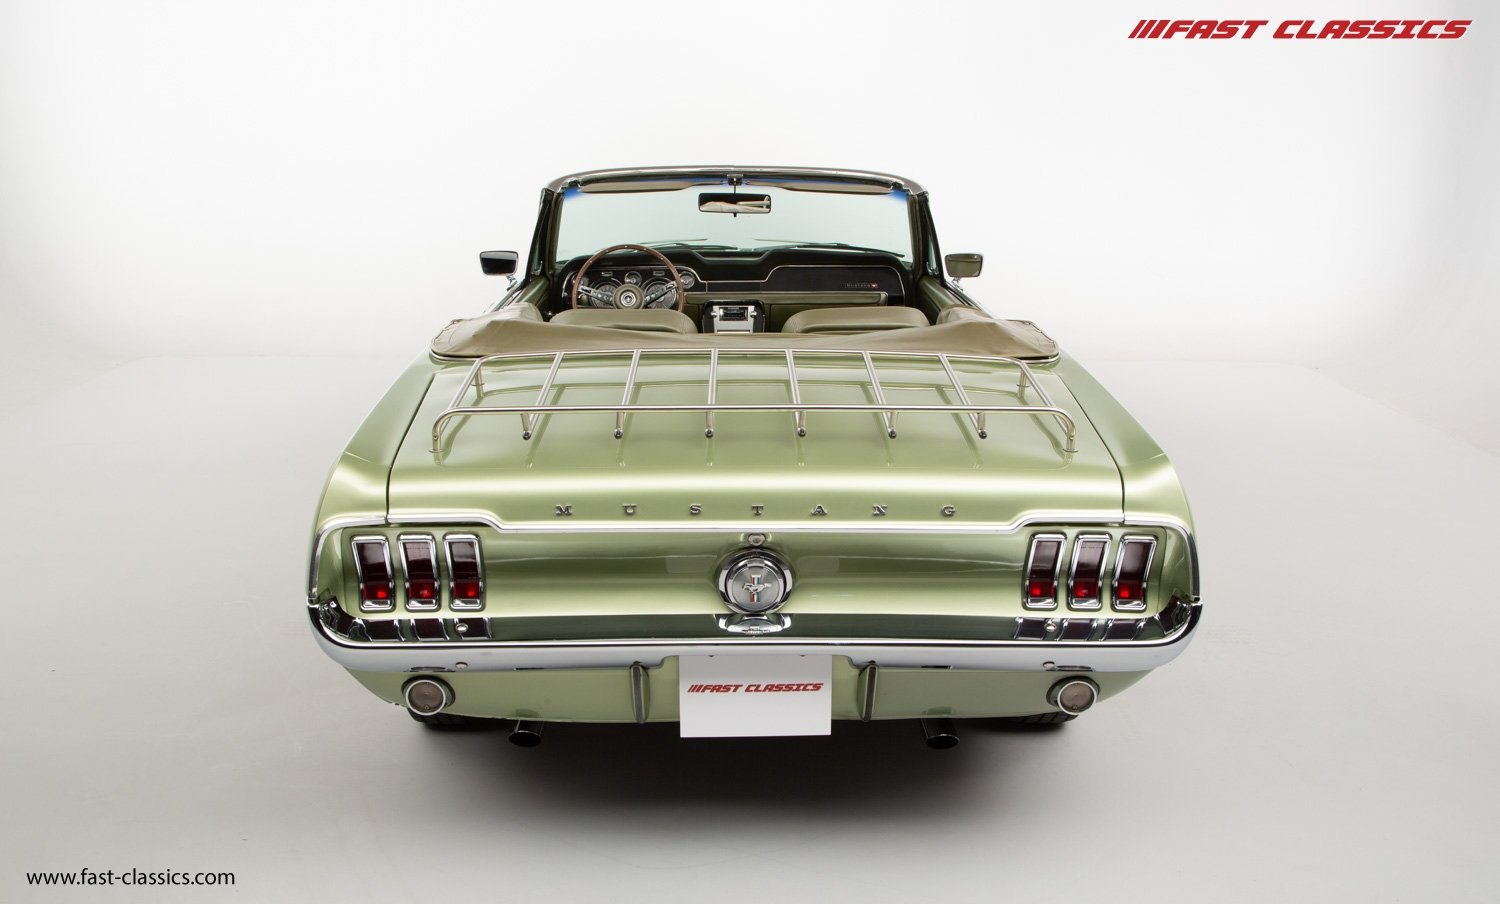 FORD MUSTANG CONVERTIBLE // 1967 FACTORY 4-SPEED MANUAL For Sale (picture 10 of 23)